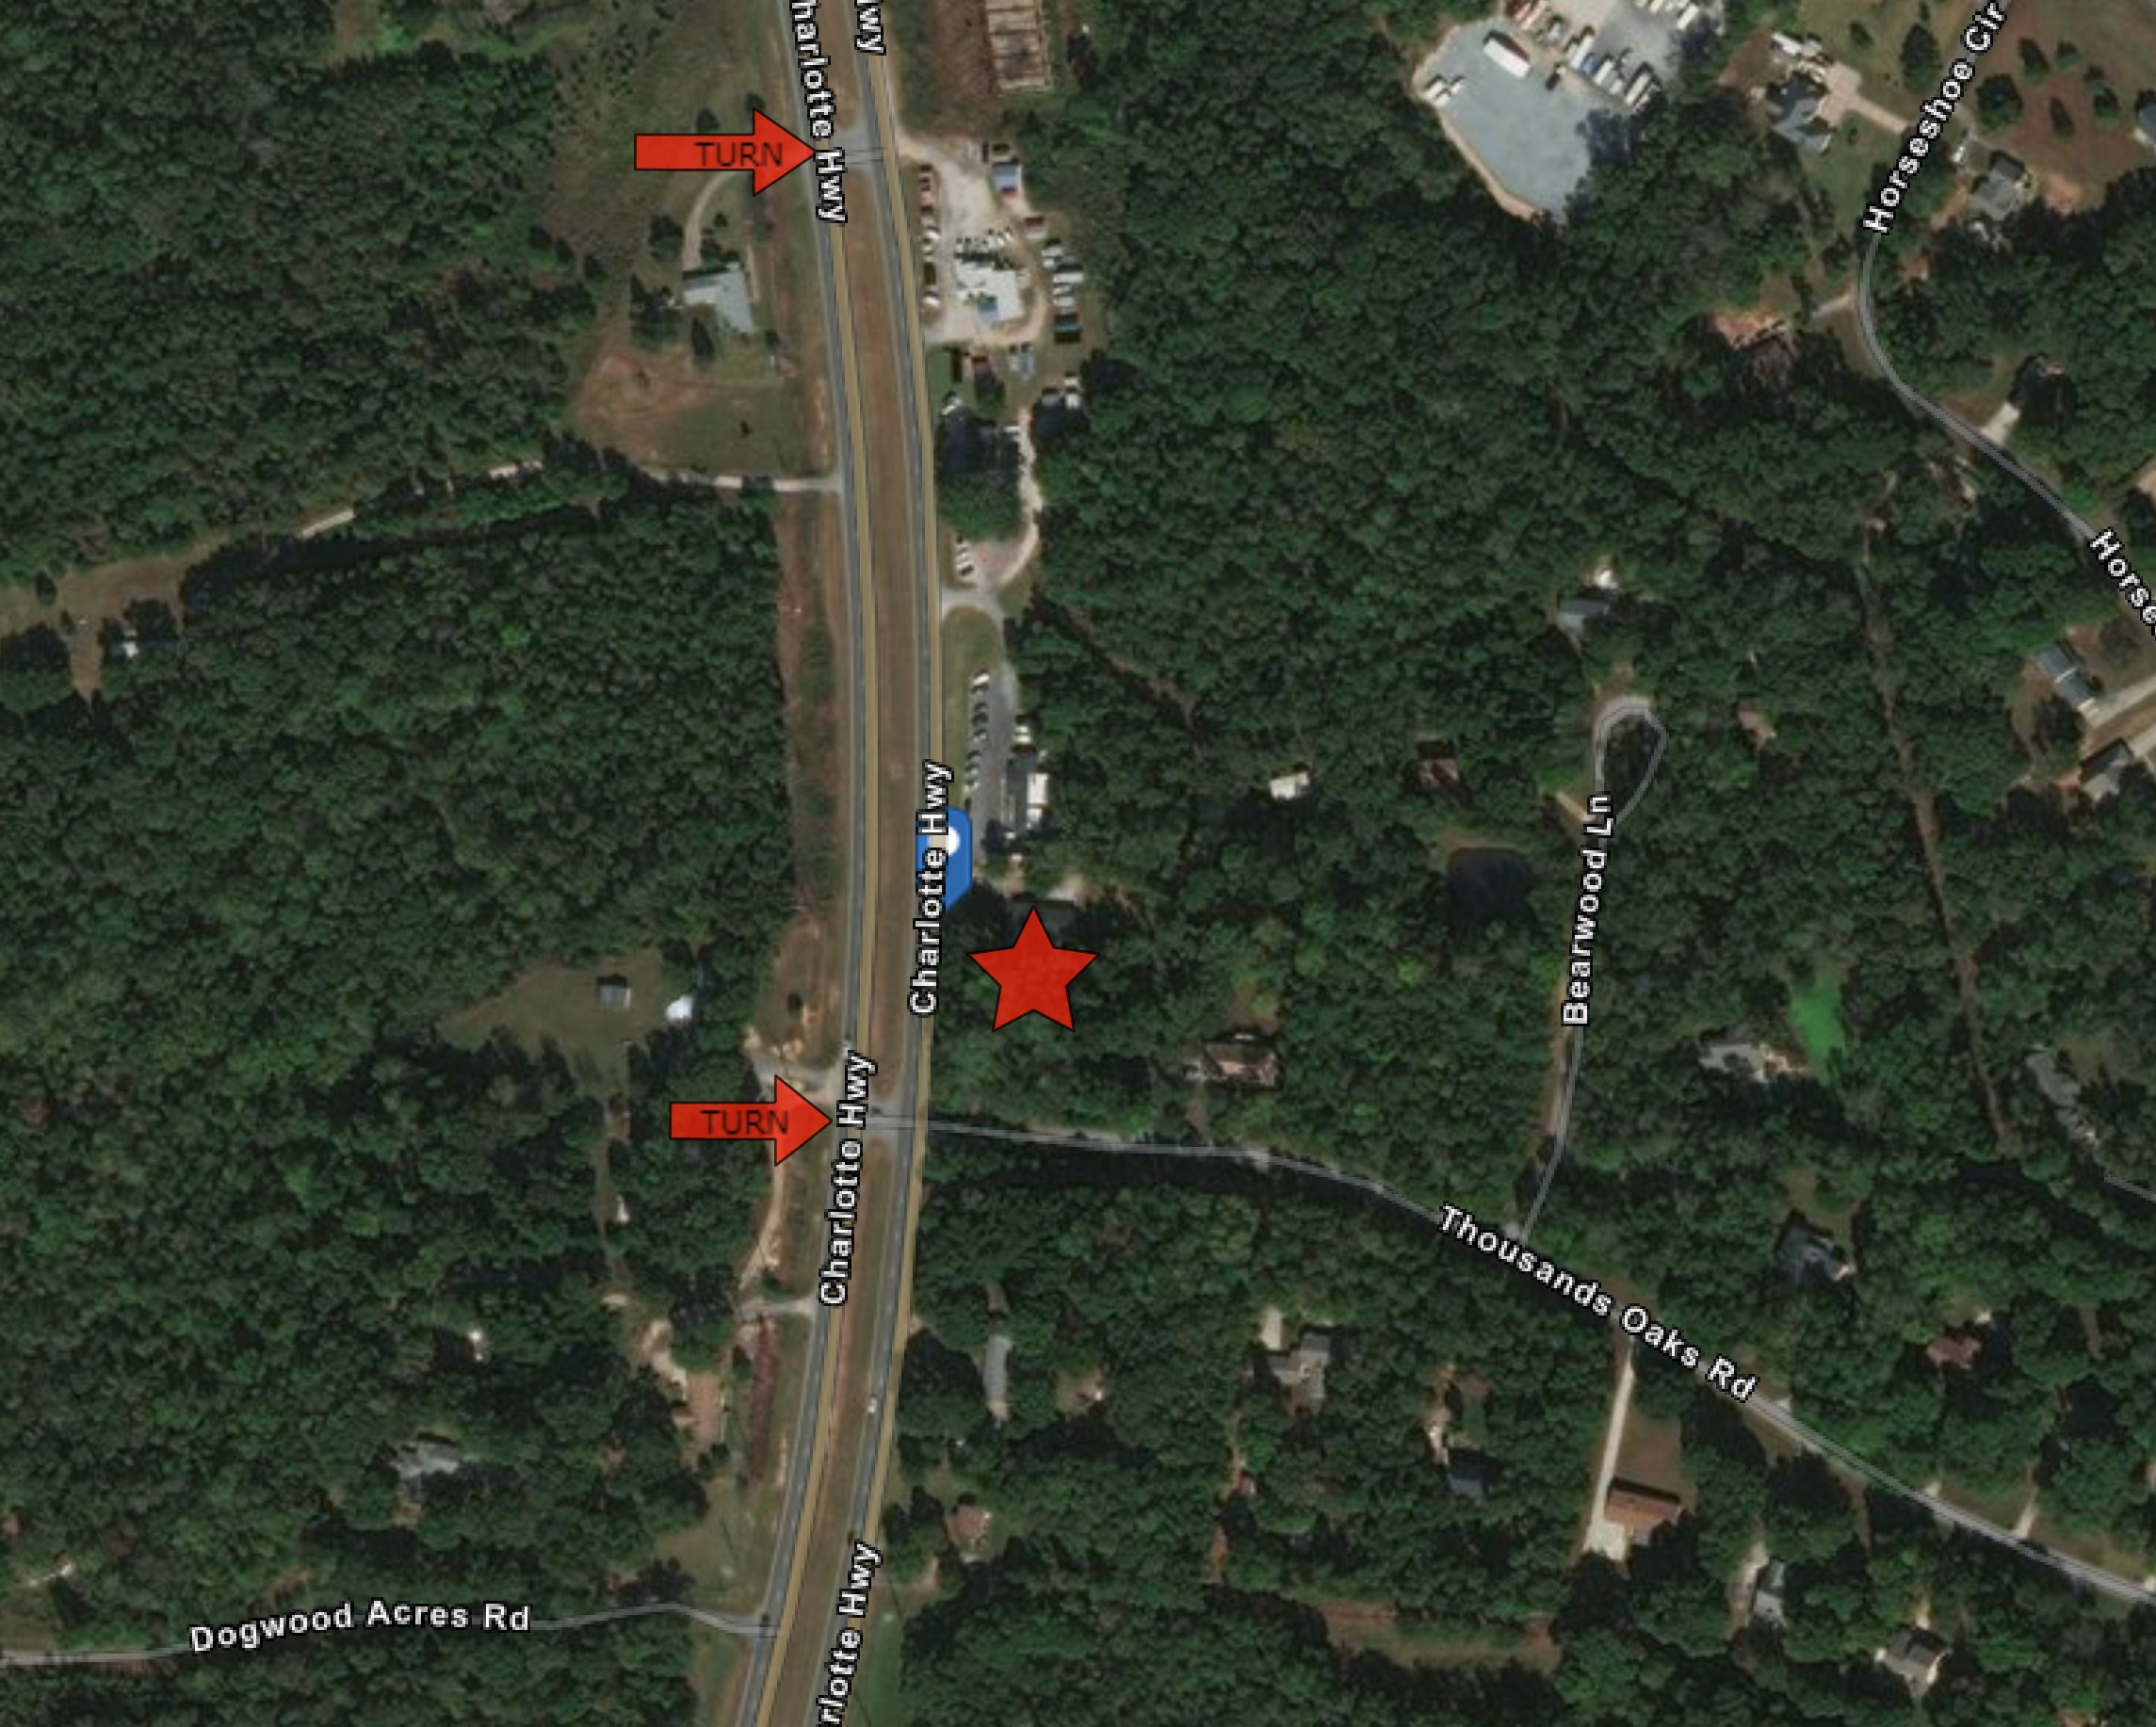 UNDER CONTRACT : Prime Commercial Lot on Charlotte Hwy (US ... on hampton roads traffic map, dallas fort worth traffic map, live chicago traffic map, grand rapids traffic map, orlando traffic map, seattle traffic map, charlotte floor plan, washington traffic map, desoto traffic map, hawaii traffic map, buffalo traffic map, new york traffic map, missouri traffic map, massachusetts traffic map, austin traffic map, nc traffic map, texas traffic map, mississippi traffic map, las vegas traffic map, newark traffic map,